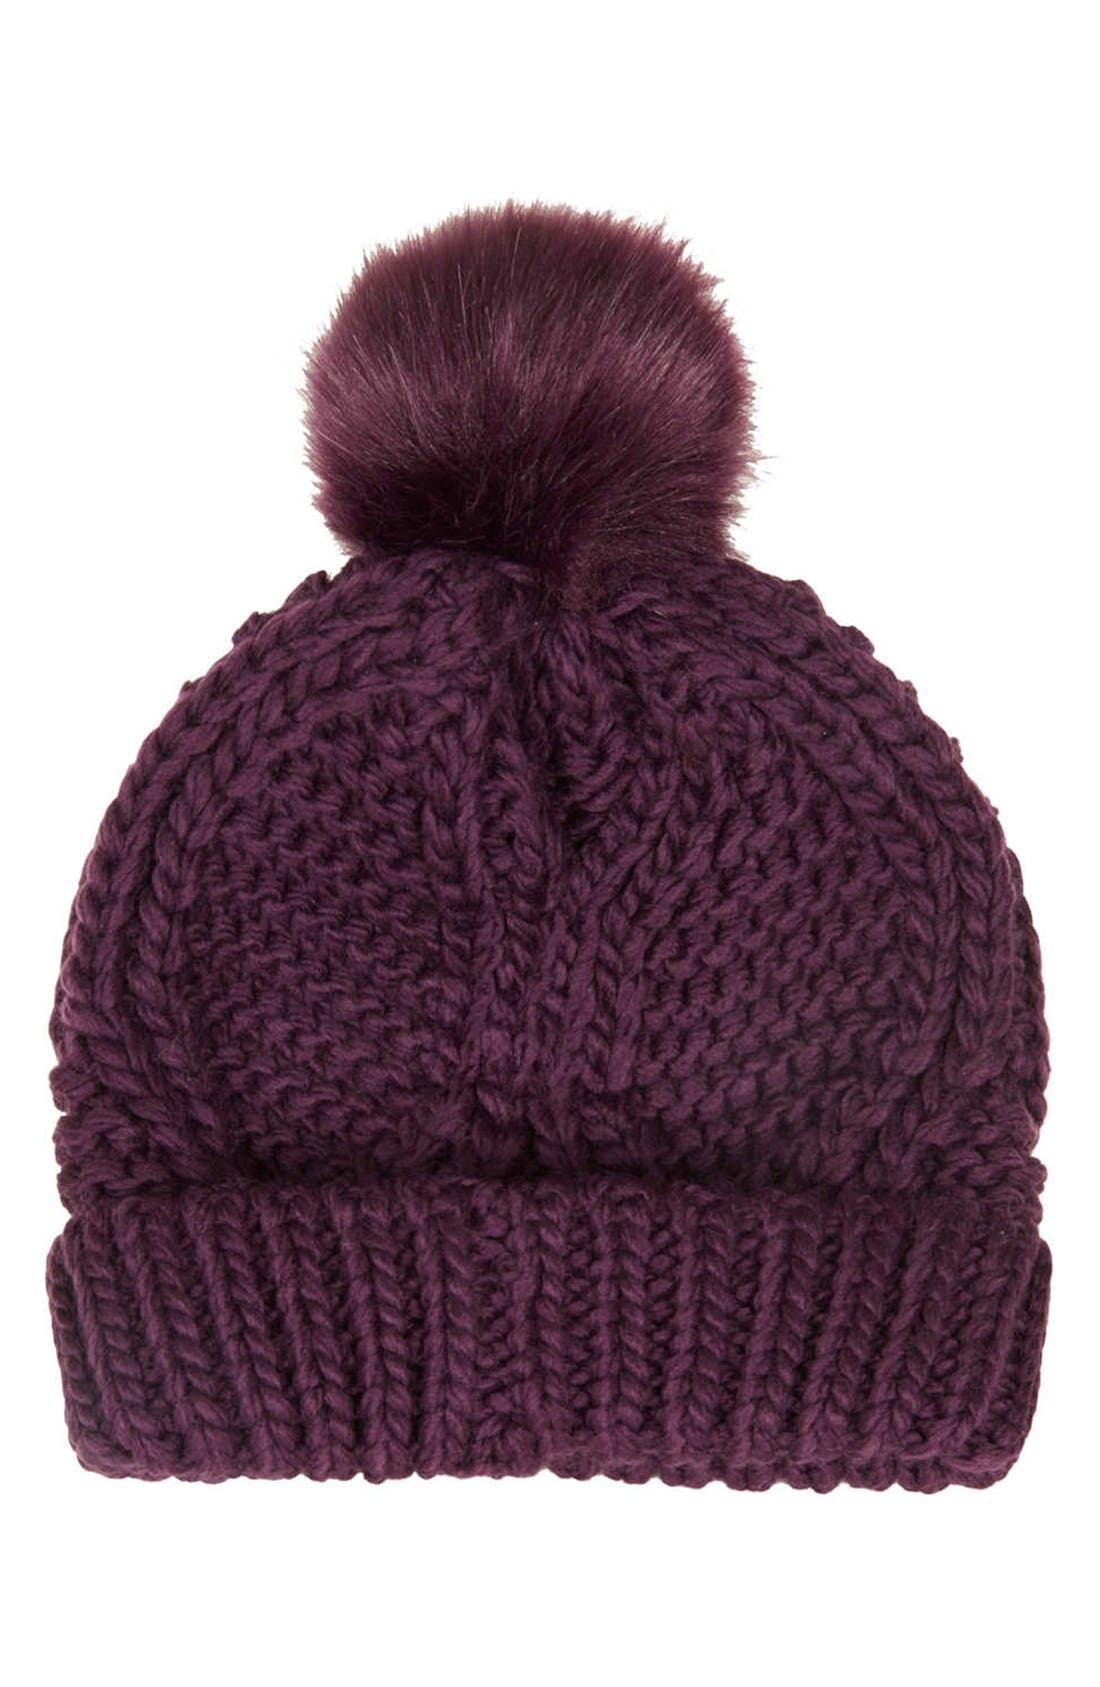 Main Image - Topshop Cable Knit Pompom Beanie